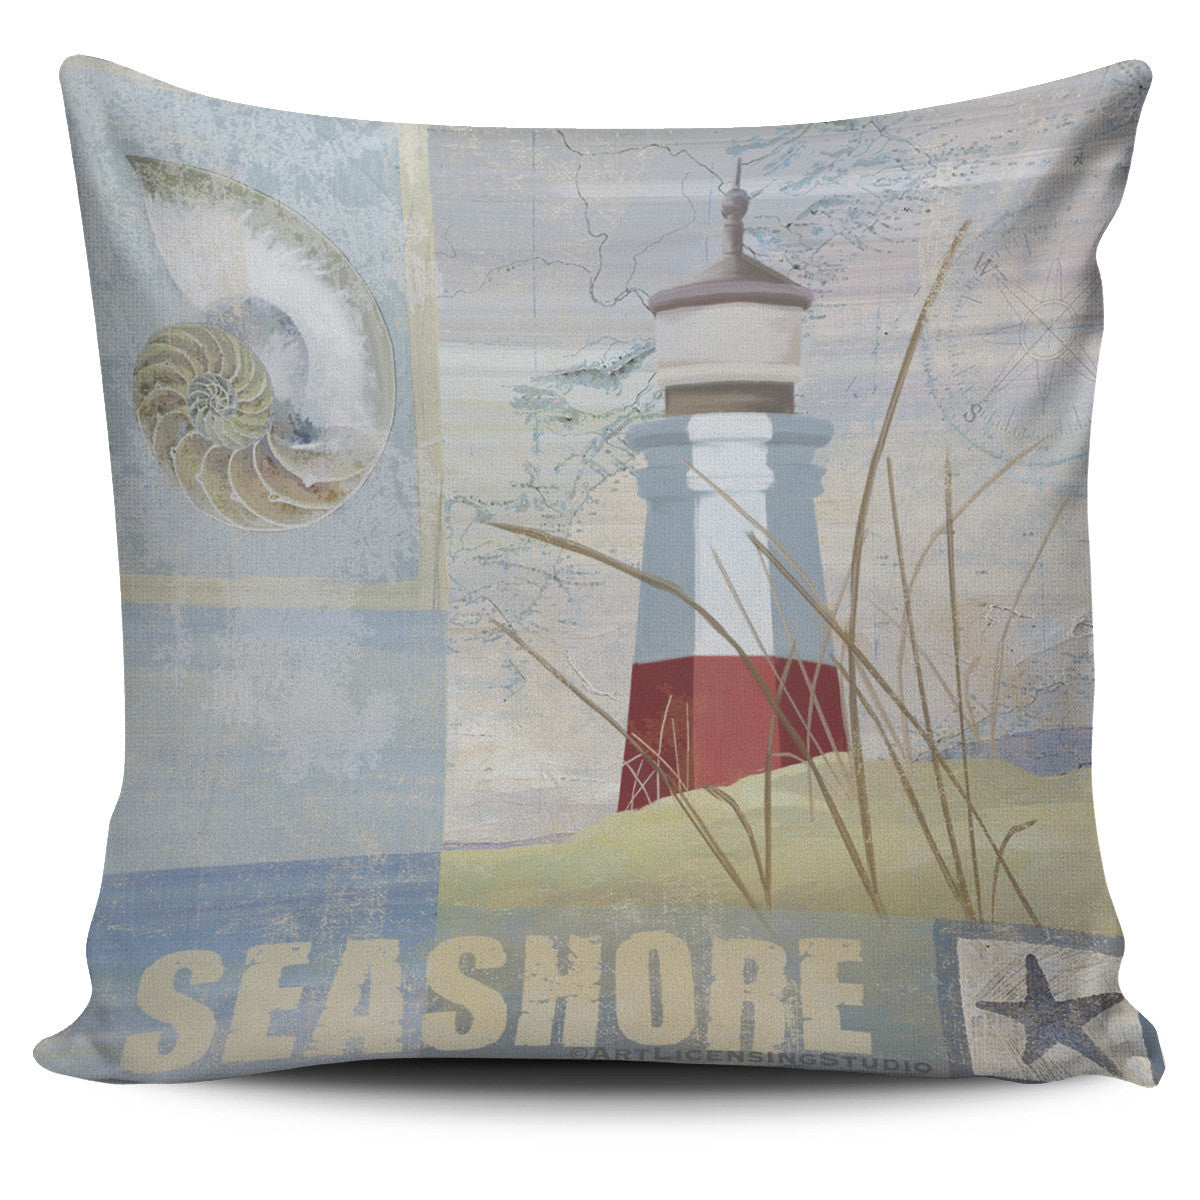 Lighthouse Designs in Tan - Pillow Covers